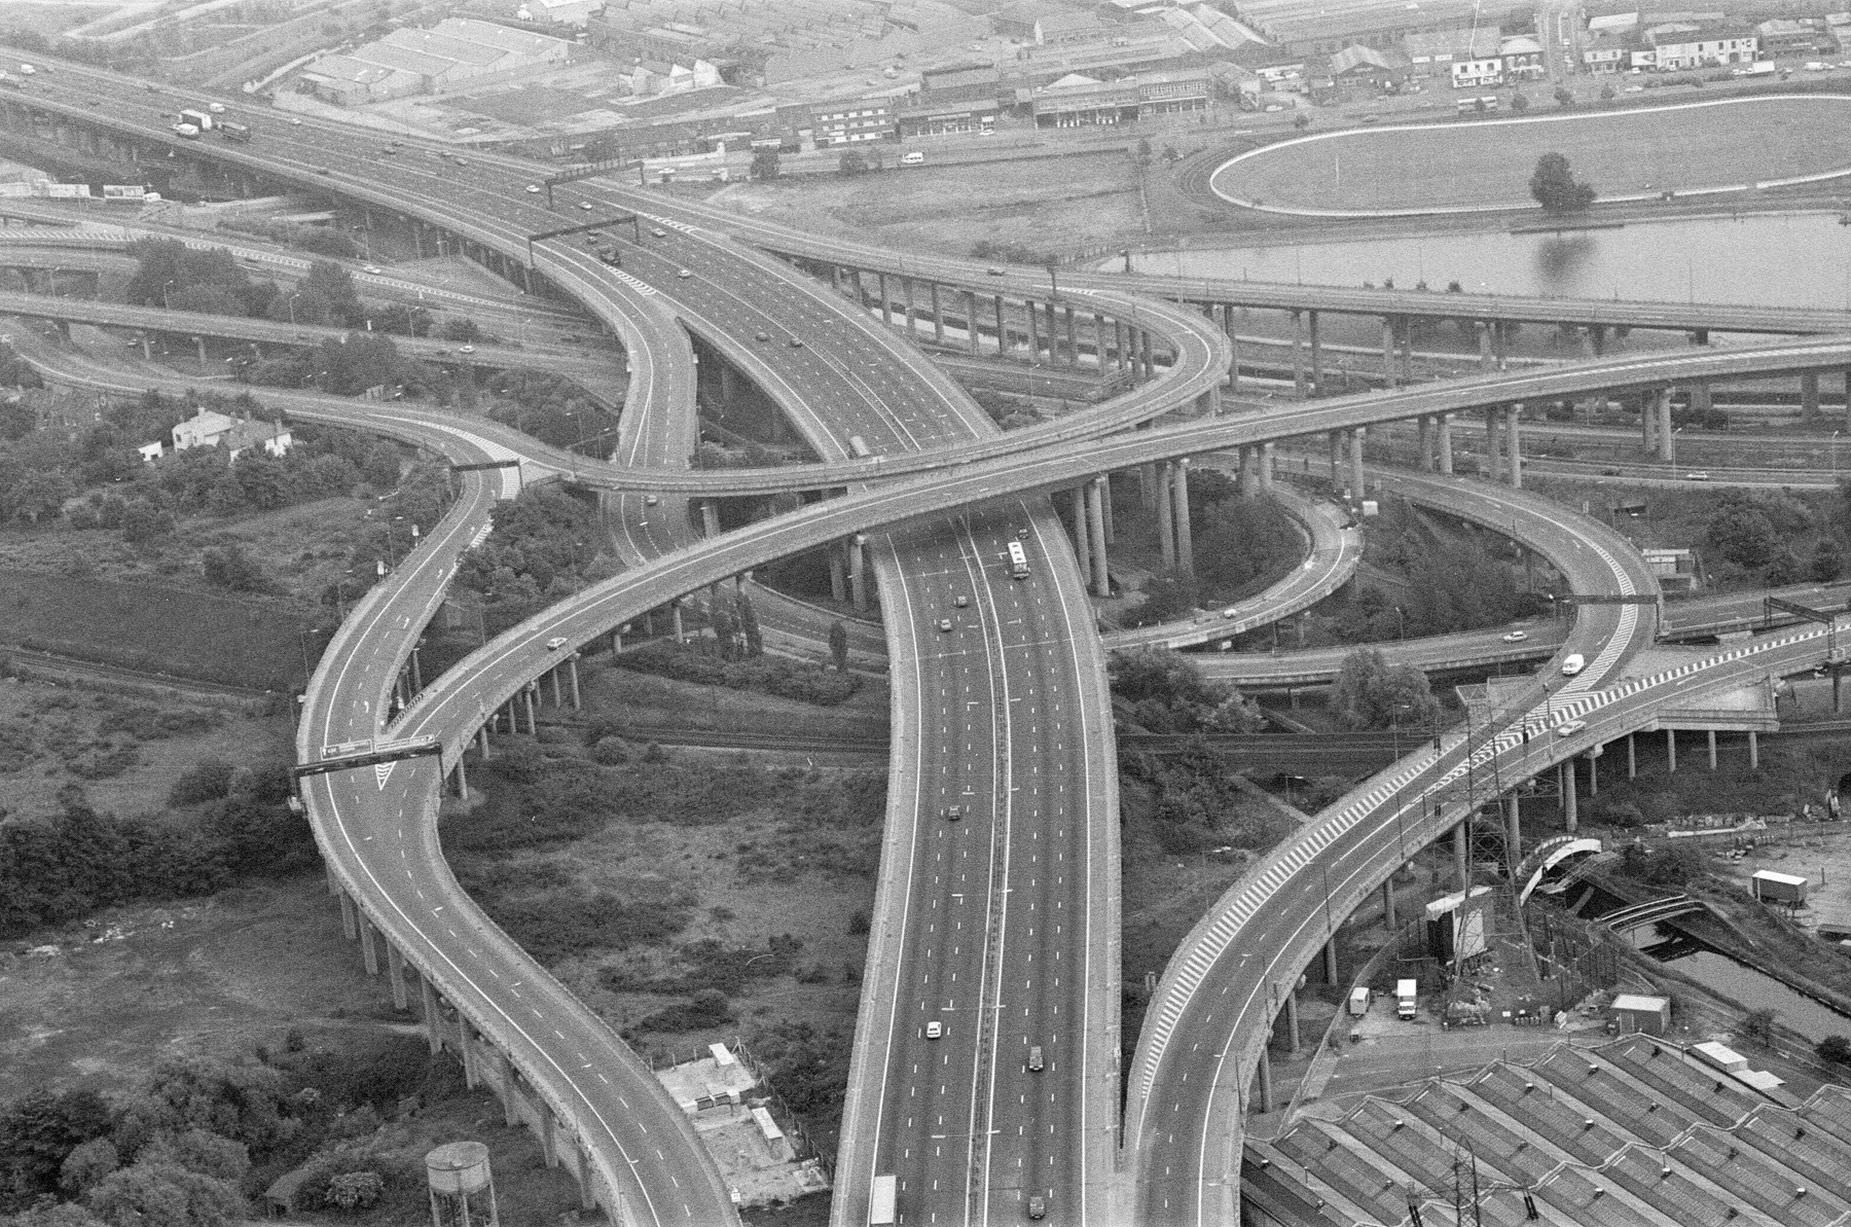 Aerial View of Spaghetti Junction, Birmingham, Tuesday 21st June 1988.